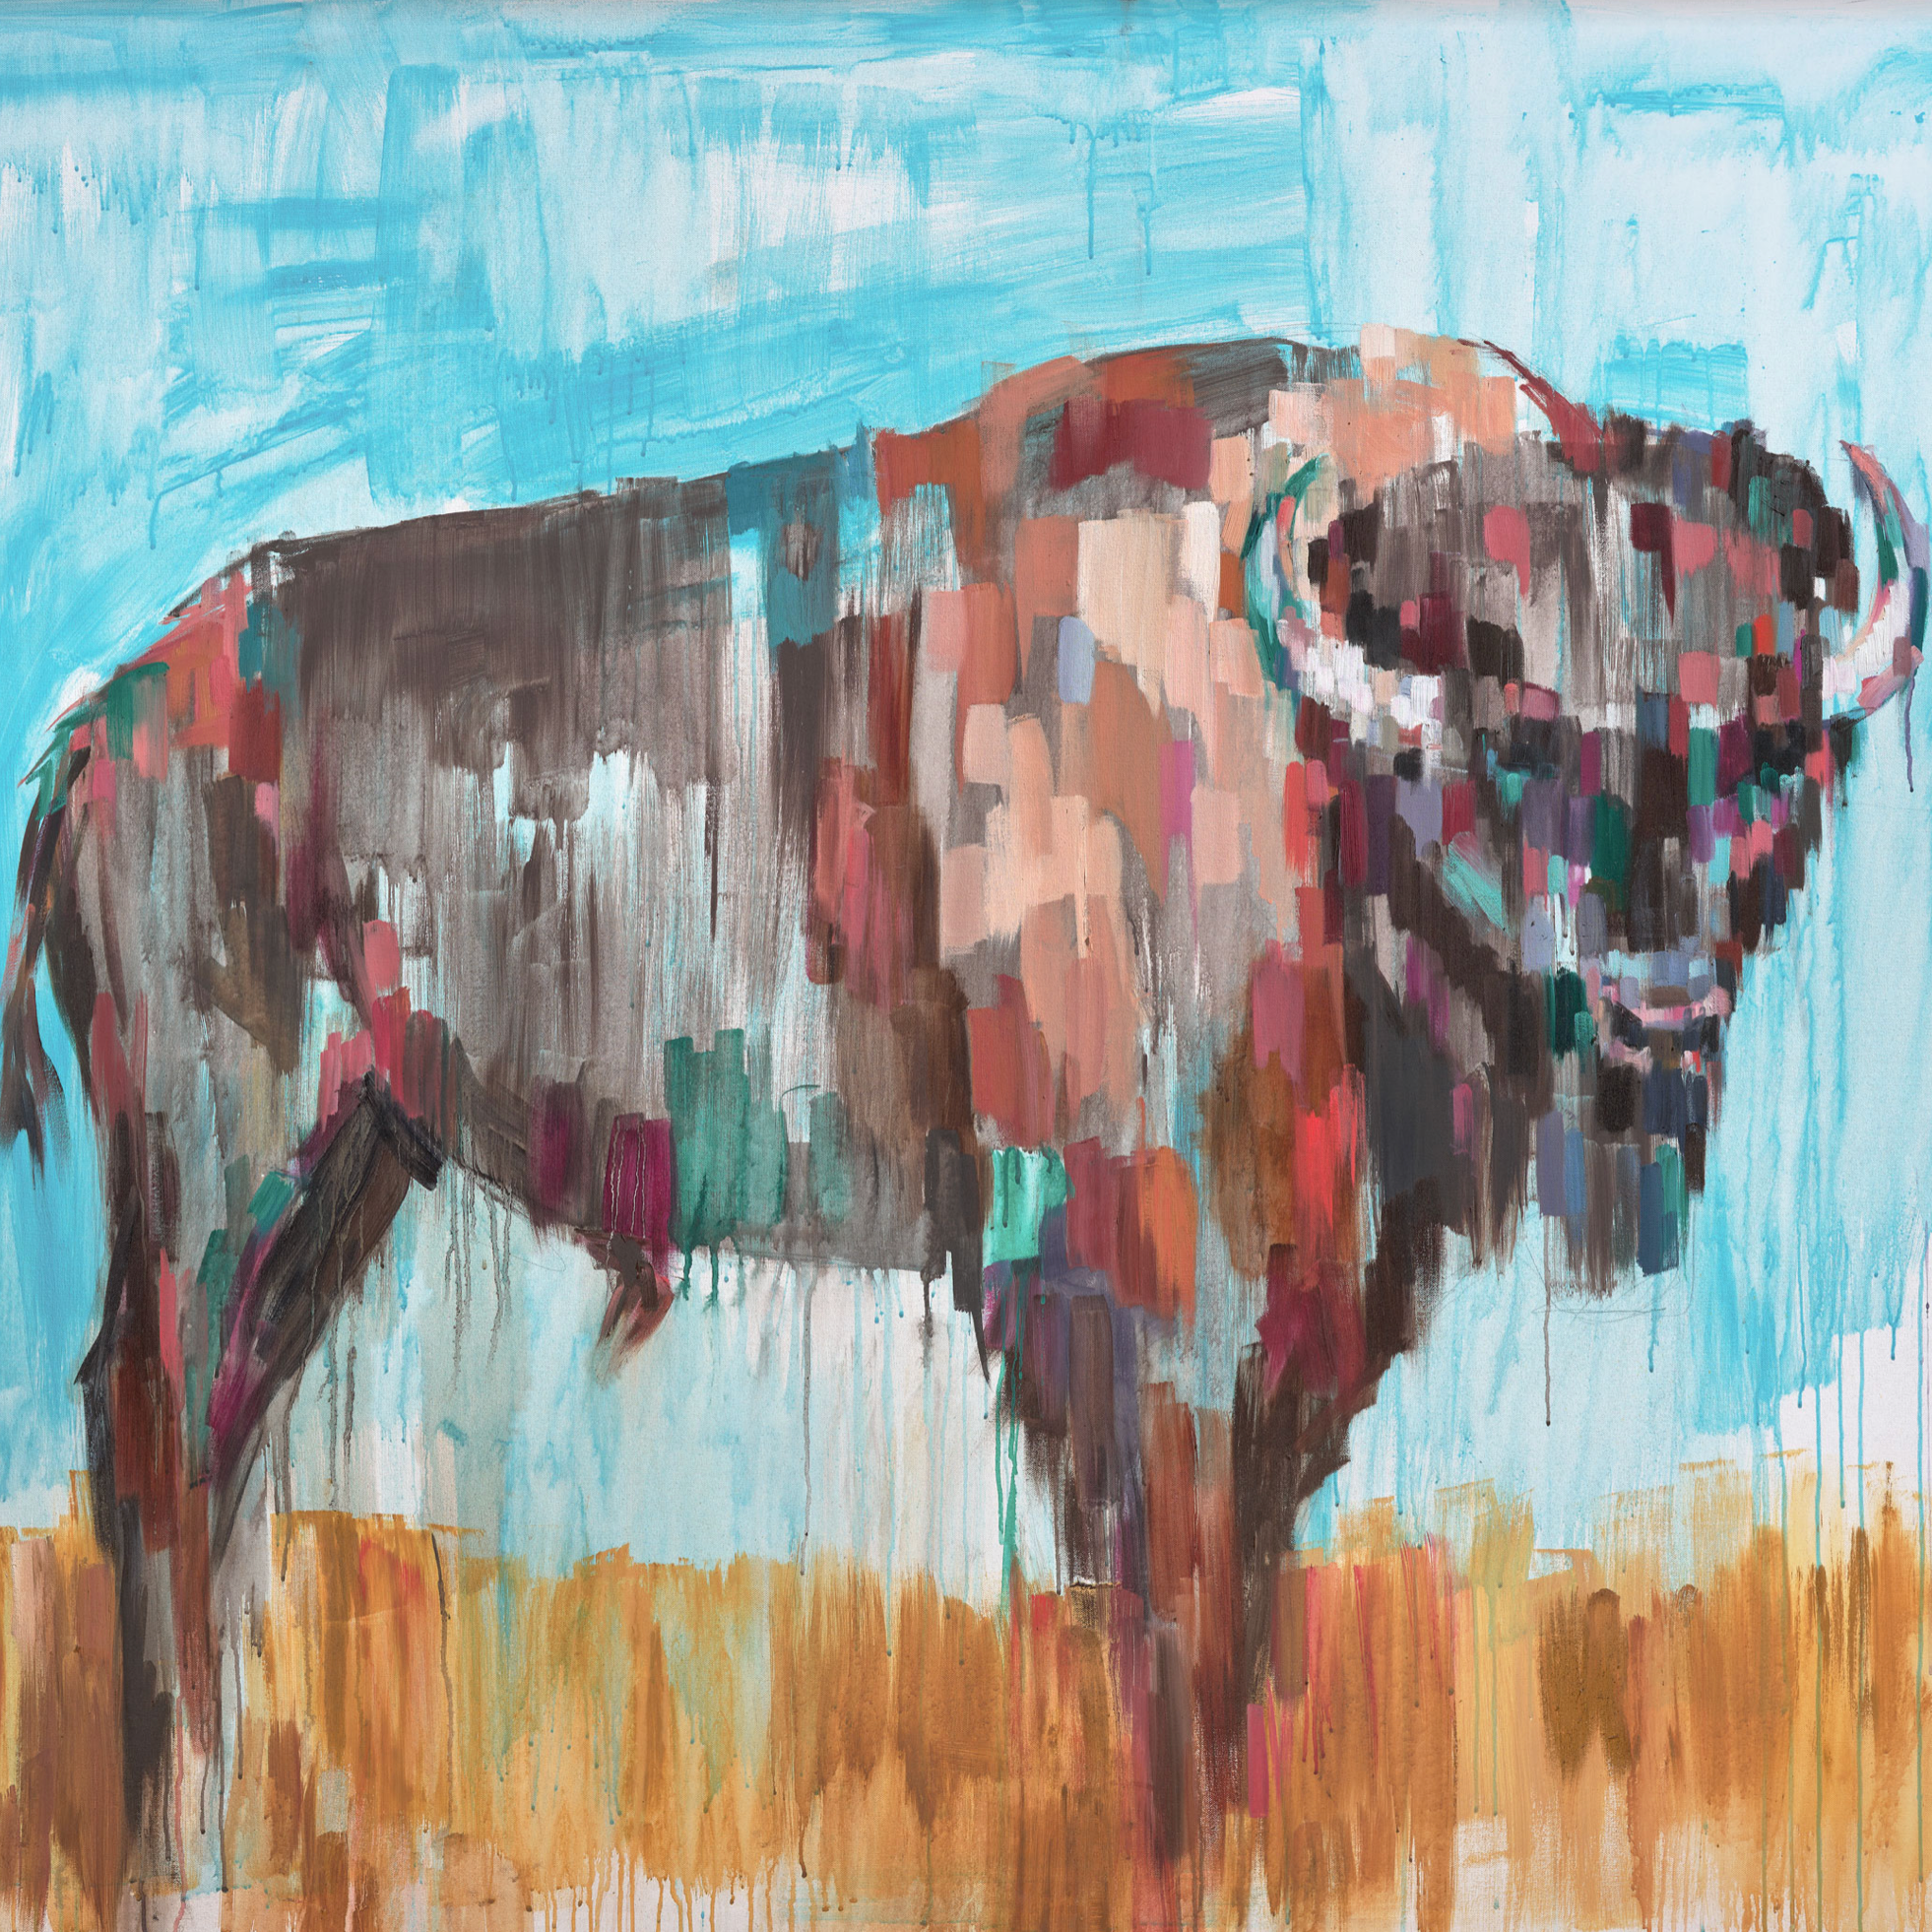 AMERICAN BISON, oil on canvas, 48 x 60 inches -prints available below